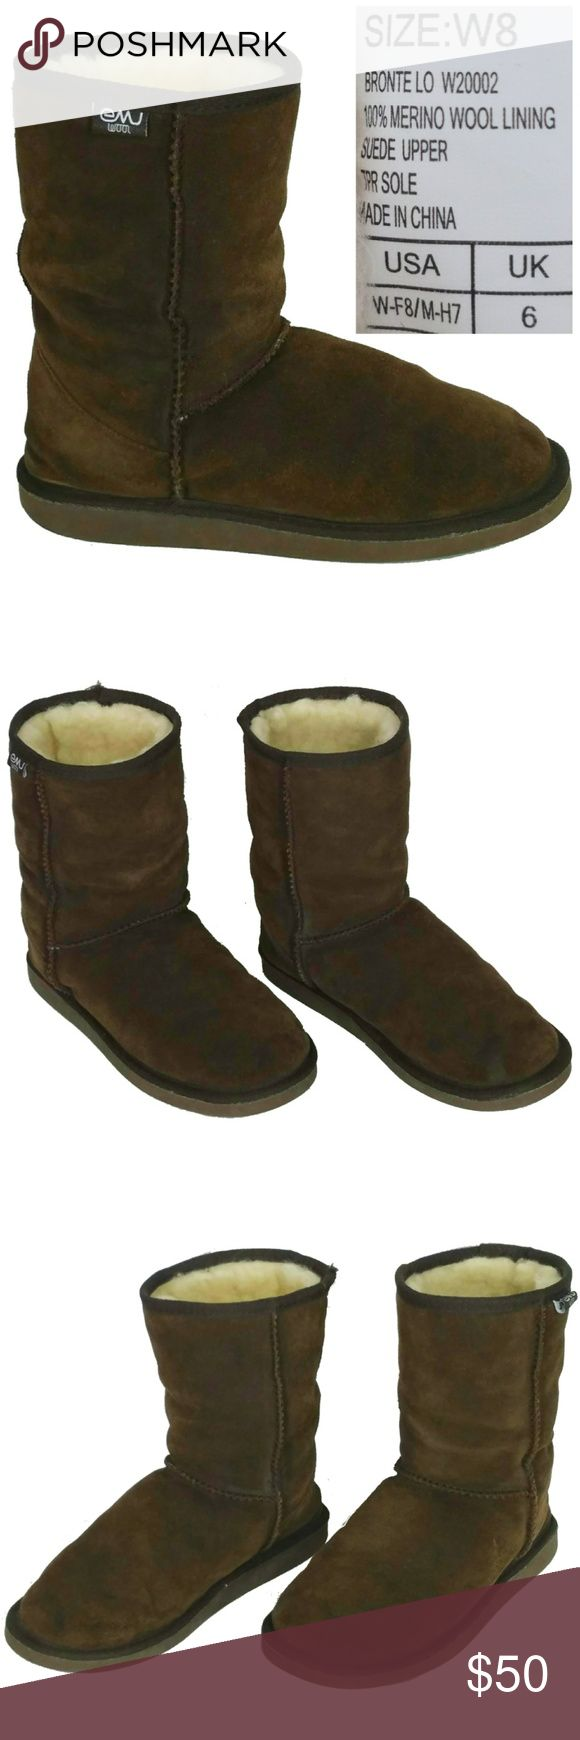 EMU Wool Suede Ankle Boots Size 8W EMU Australia Bronte Lo Women Wool Suede Ankle Boots Size 8W Wide Brown Slip On  Overall Excellent Condition. Needs a suede cleaning Emu Shoes Ankle Boots & Booties